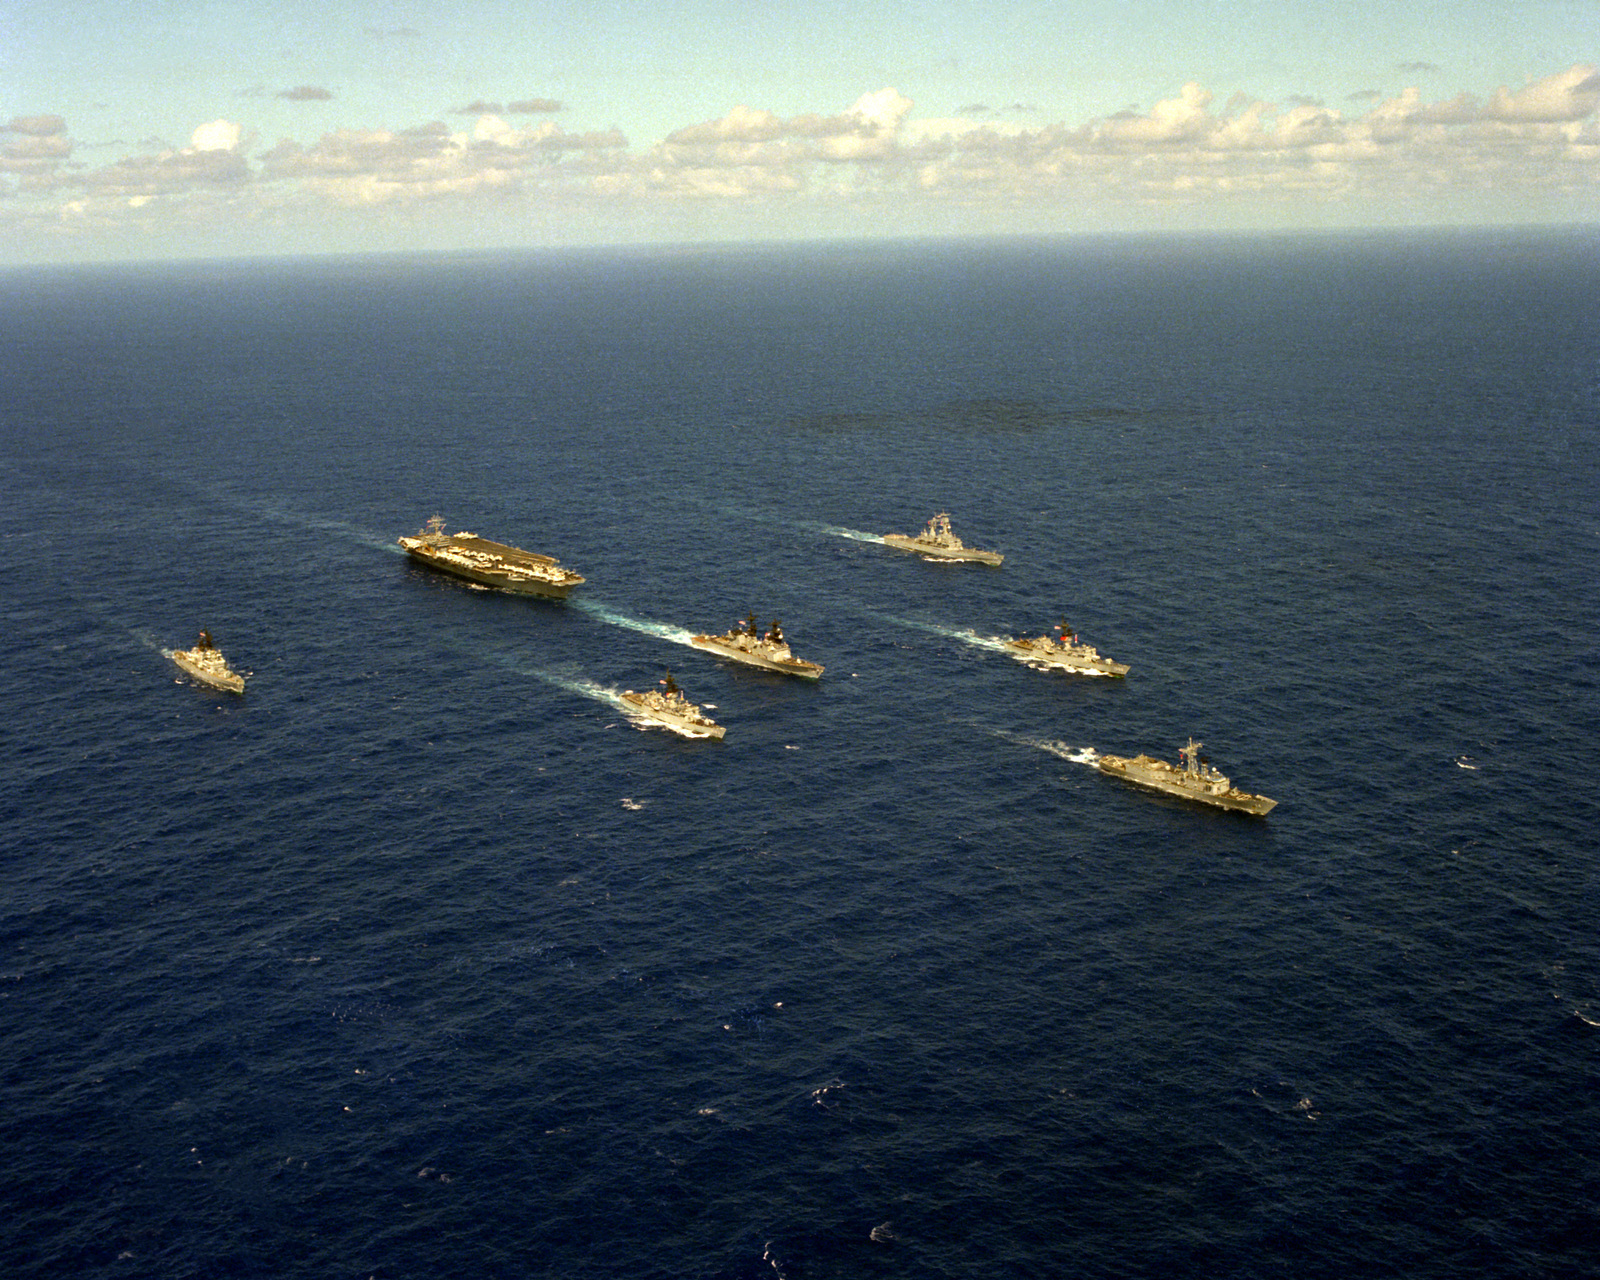 A starboard bow view of the nuclear-powered aircraft carrier USS CARL VINSON (CVN-70) underway near Hawaii with its battle group. Left to right: the guided missile cruiser USS WORDEN (CG-18), the frigate USS COOK (FF-1083), the destroyer USS HEWITT (DD-966), the nuclear-powered guided missile cruiser USS TEXAS (CGN-39), the frigate USS BARBEY (FF-1088) and the guided missile frigate USS SIDES (FFG-14)